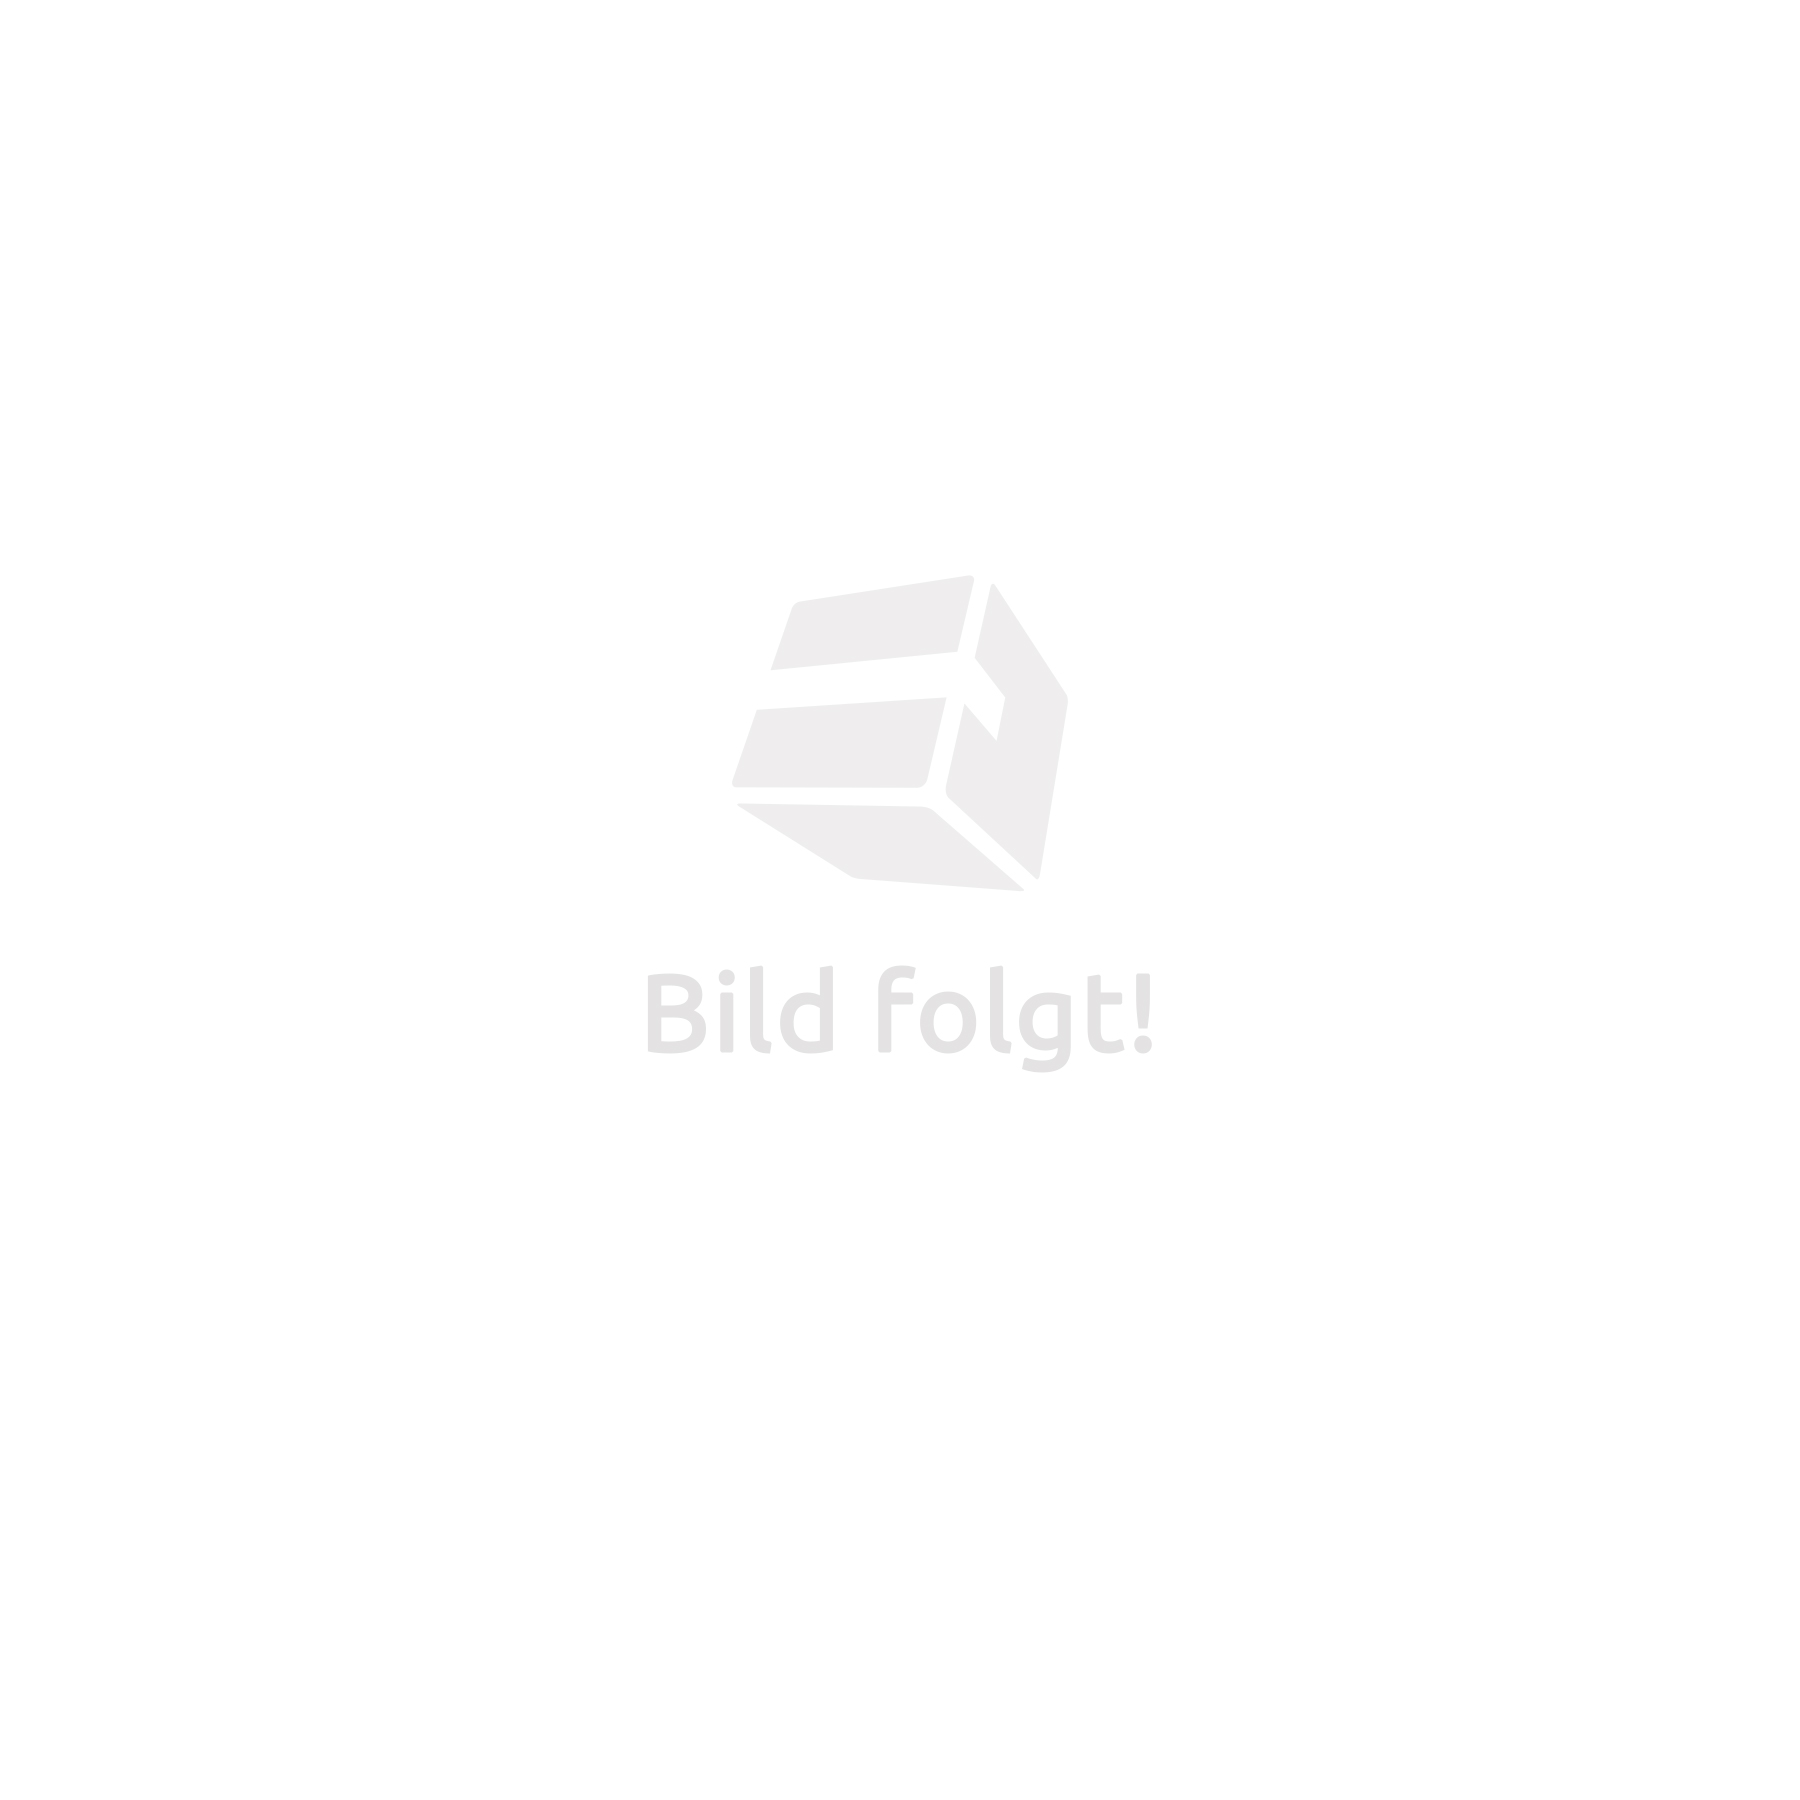 Faucet glass rectangular waterfall tap with LED lighting